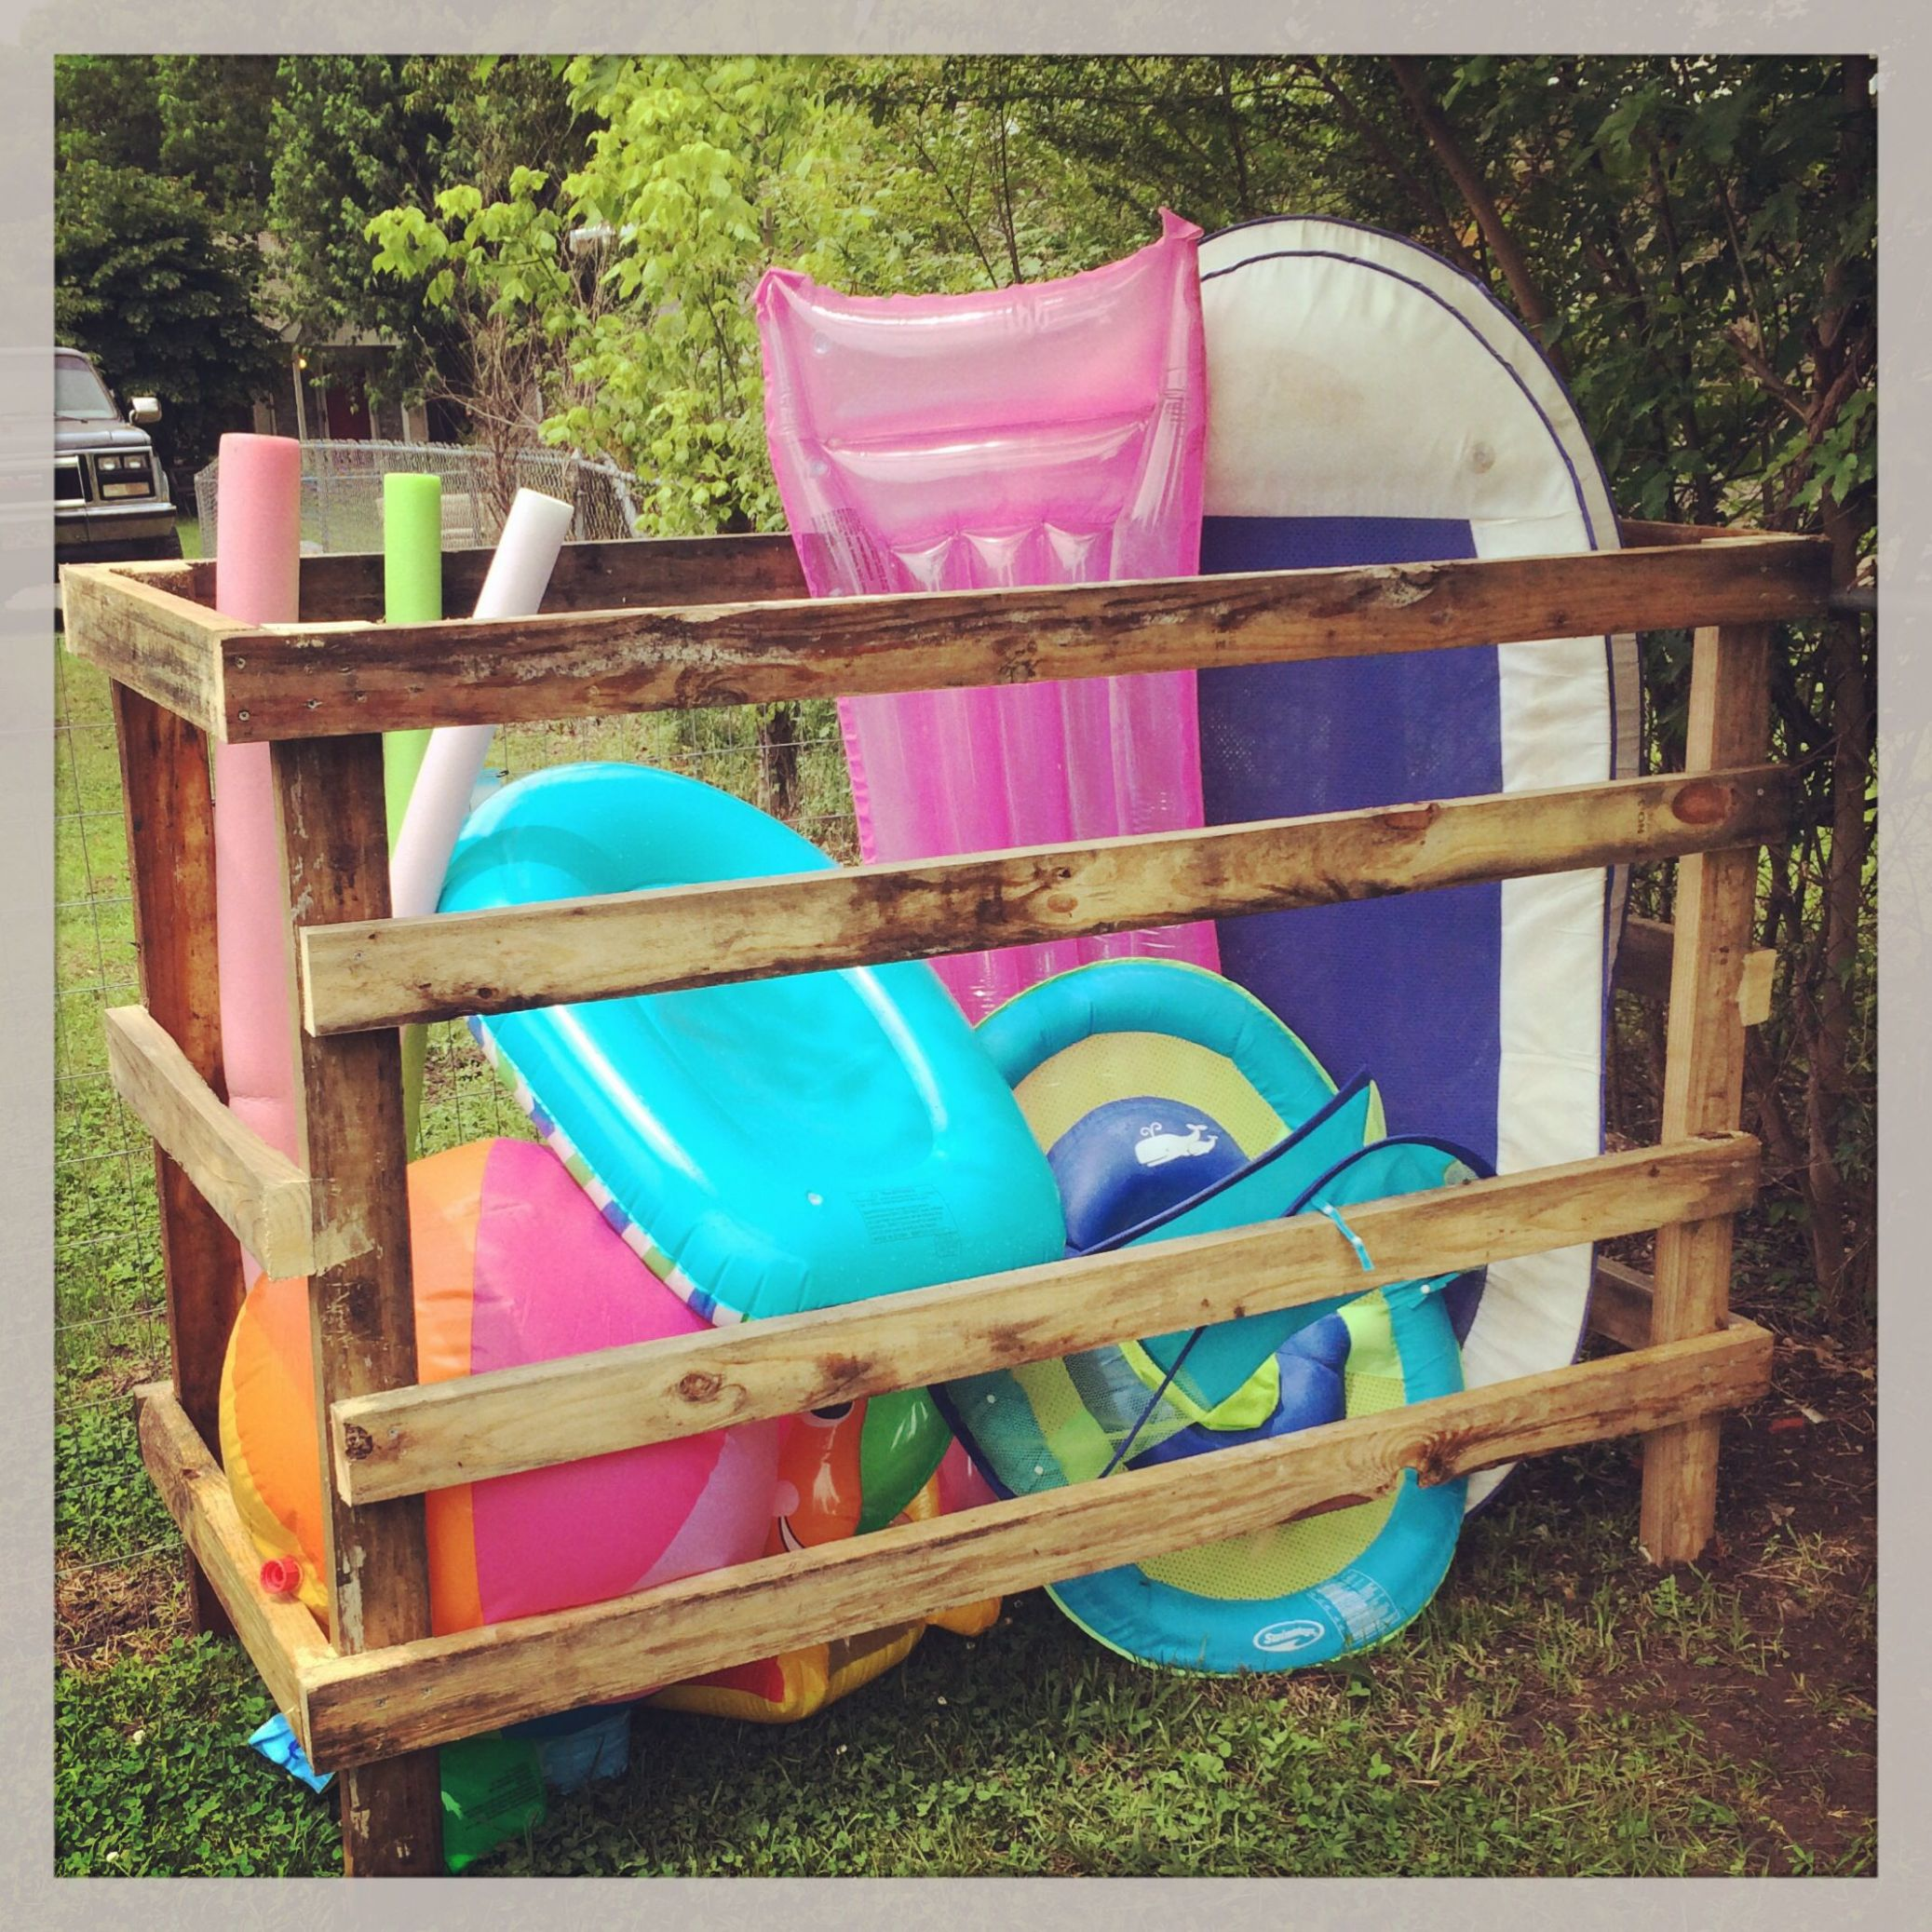 Pool float holder | Pallet pool, Pool storage, Pool float storage - pool storage ideas